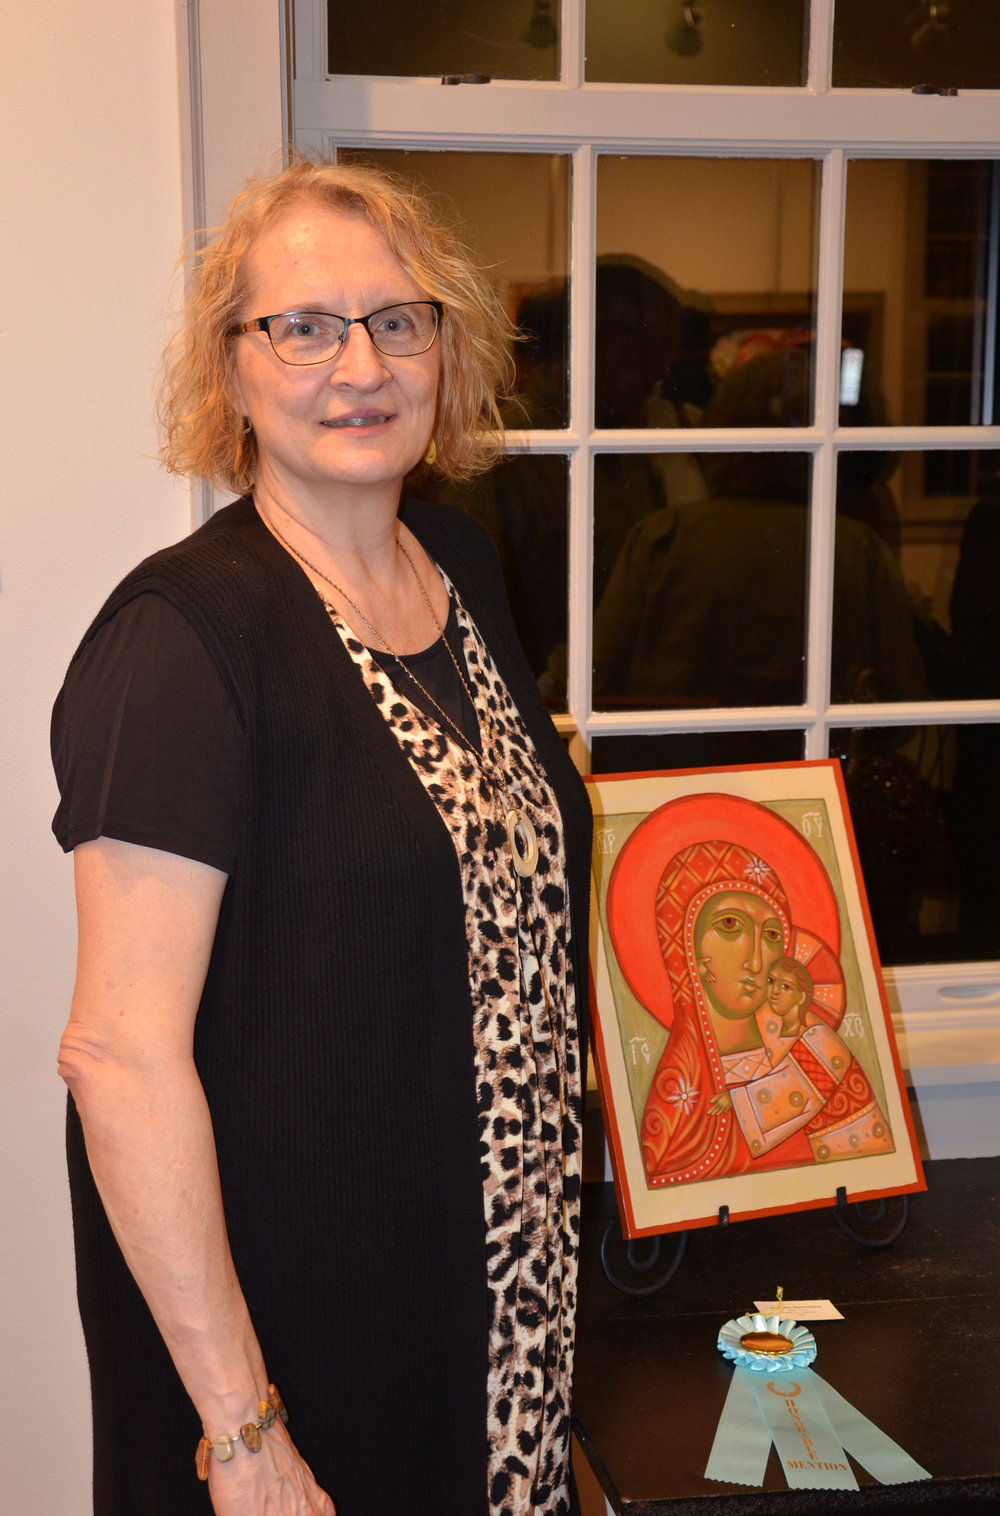 Honorable Mention - Icon by Ann Marie Furdock